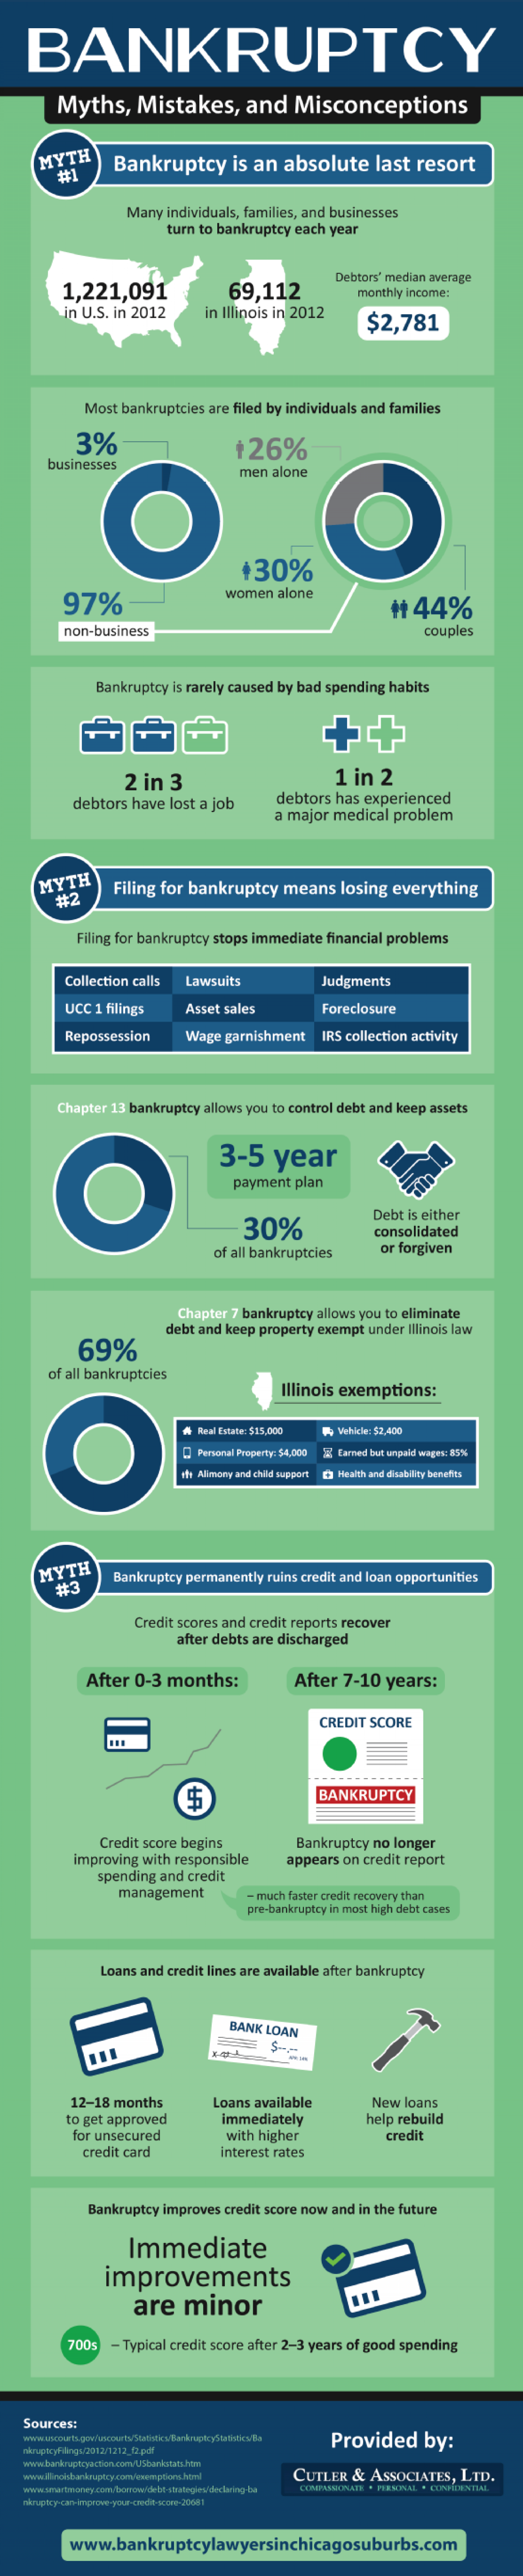 Bankruptcy Myths, Mistakes, and Misconceptions  Infographic